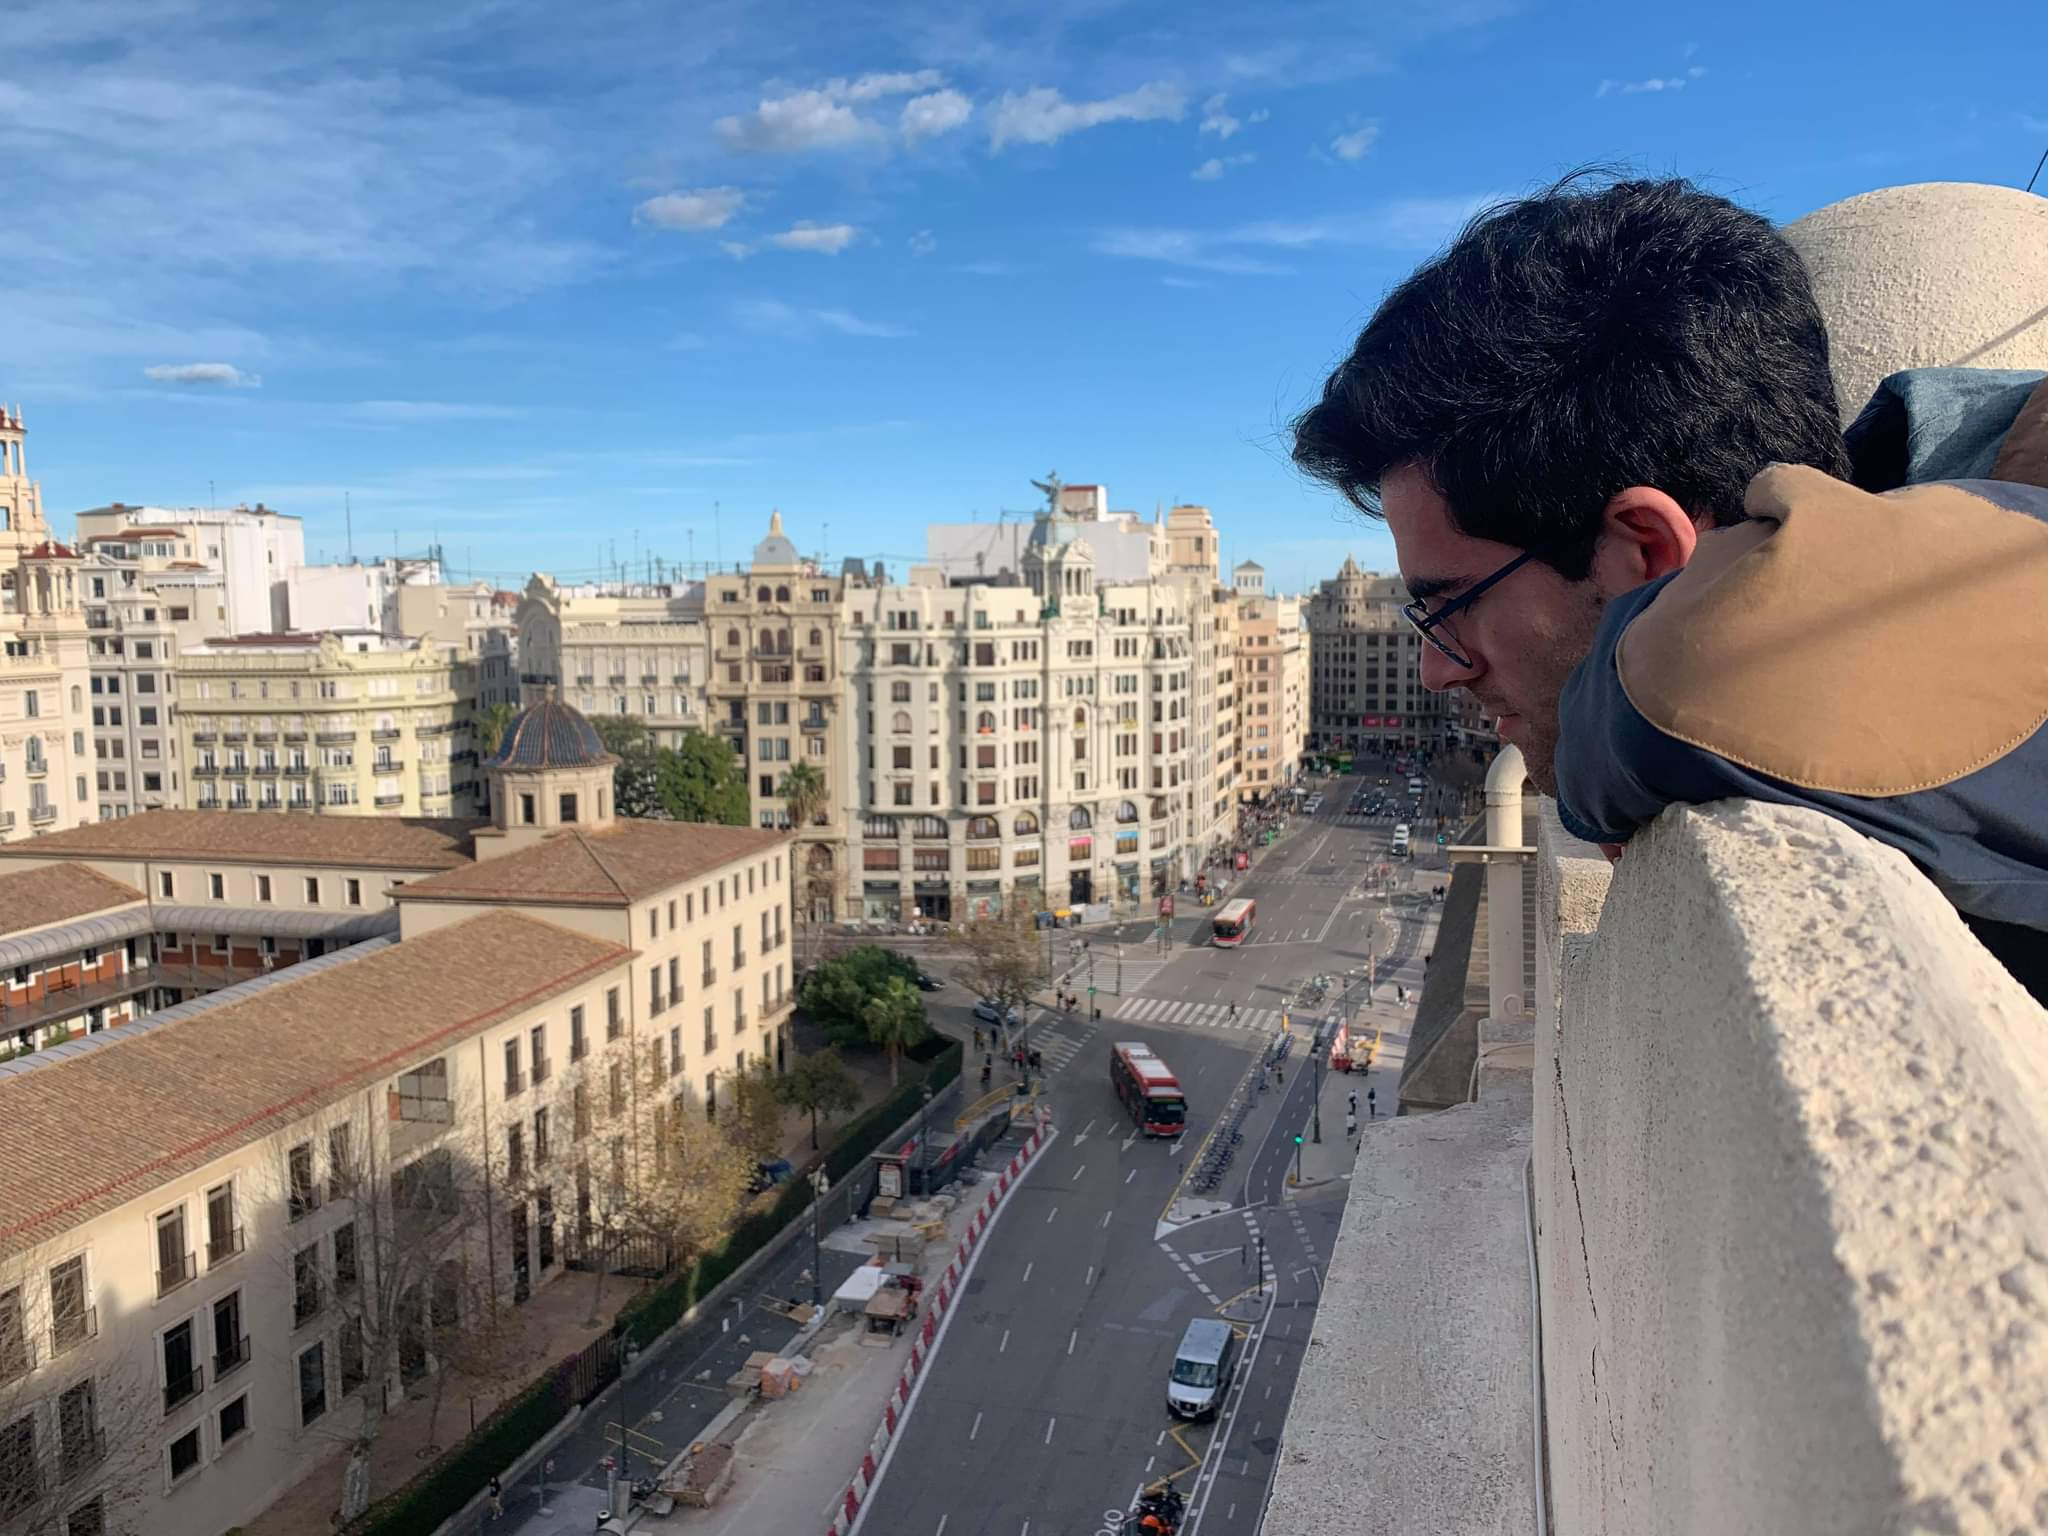 Kevin Mascitelli looking down at the street from the roof.